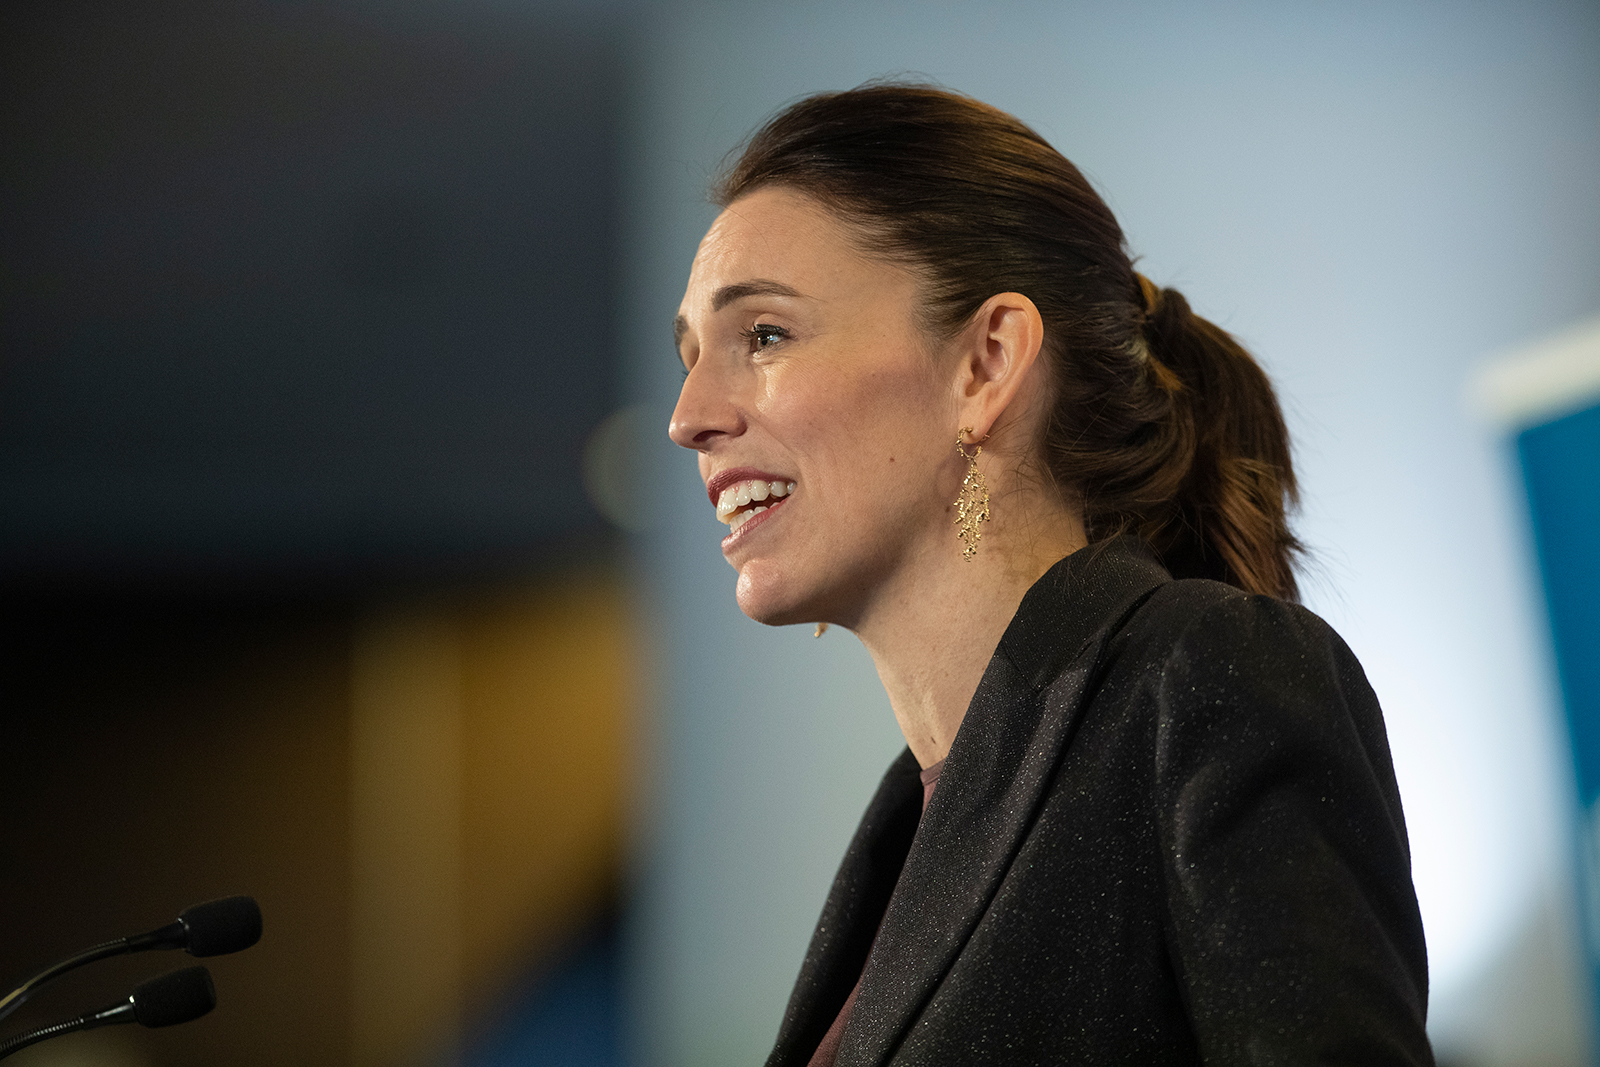 New Zealand Prime Minister Jacinda Ardern addresses business leaders who gathered for the Business NZ pre budget lunch in Auckland, New Zealand, on May 13.